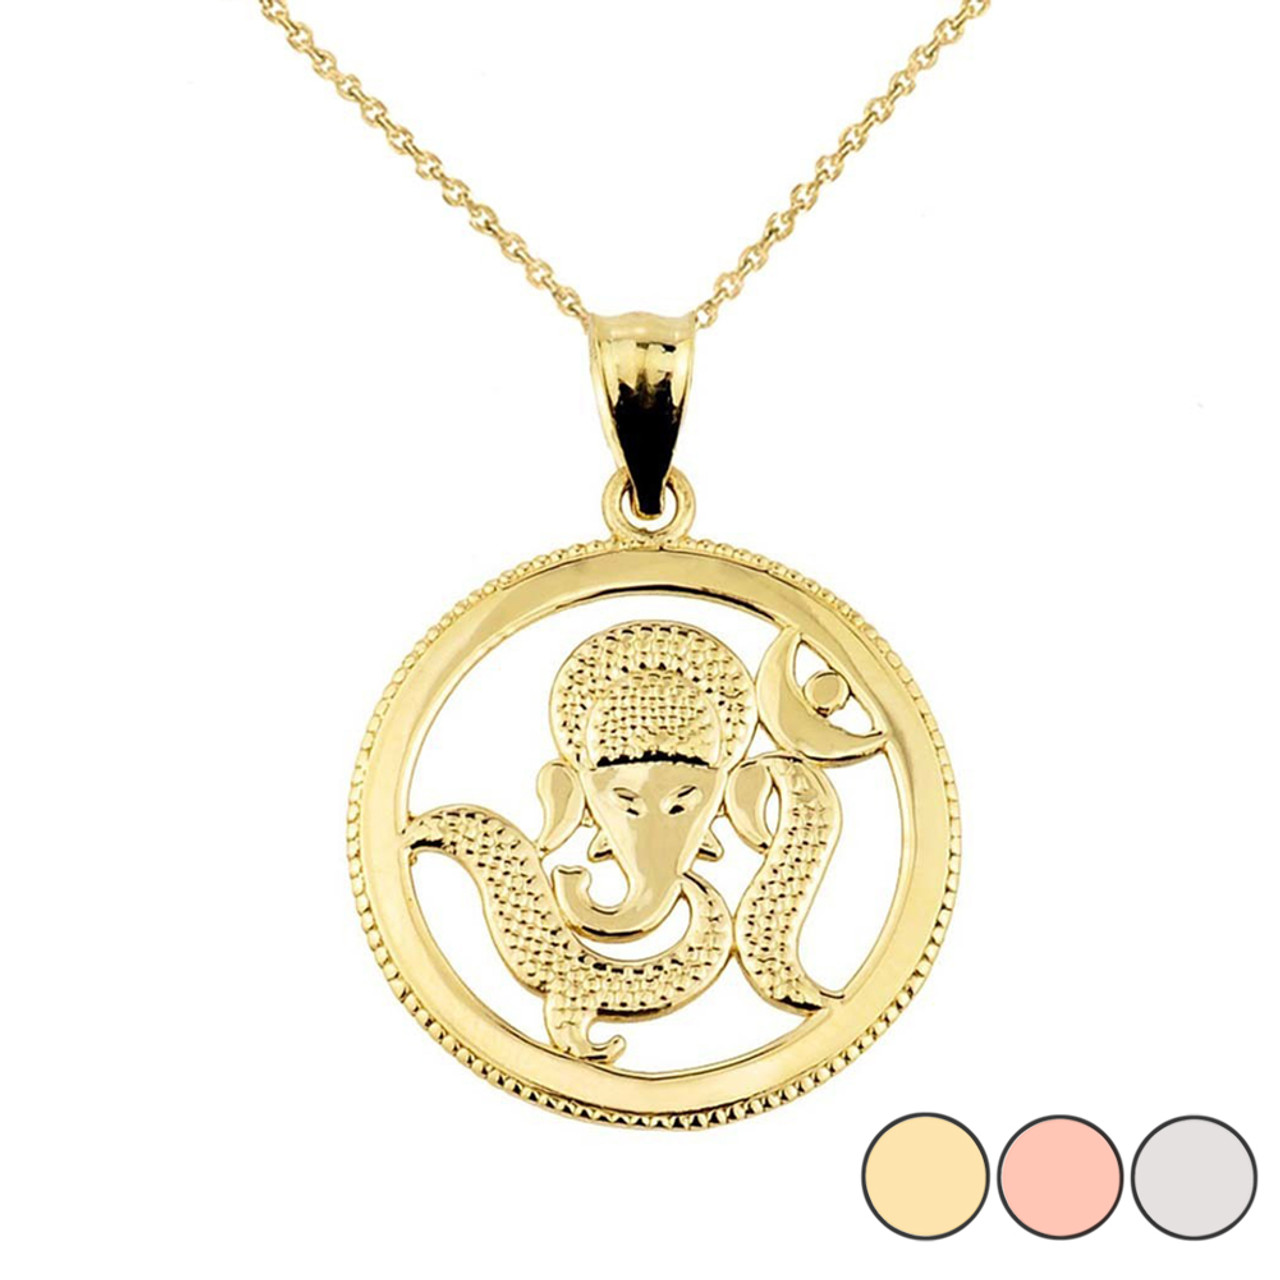 Solid Rose Gold Lord Ganesha Charm Pendant